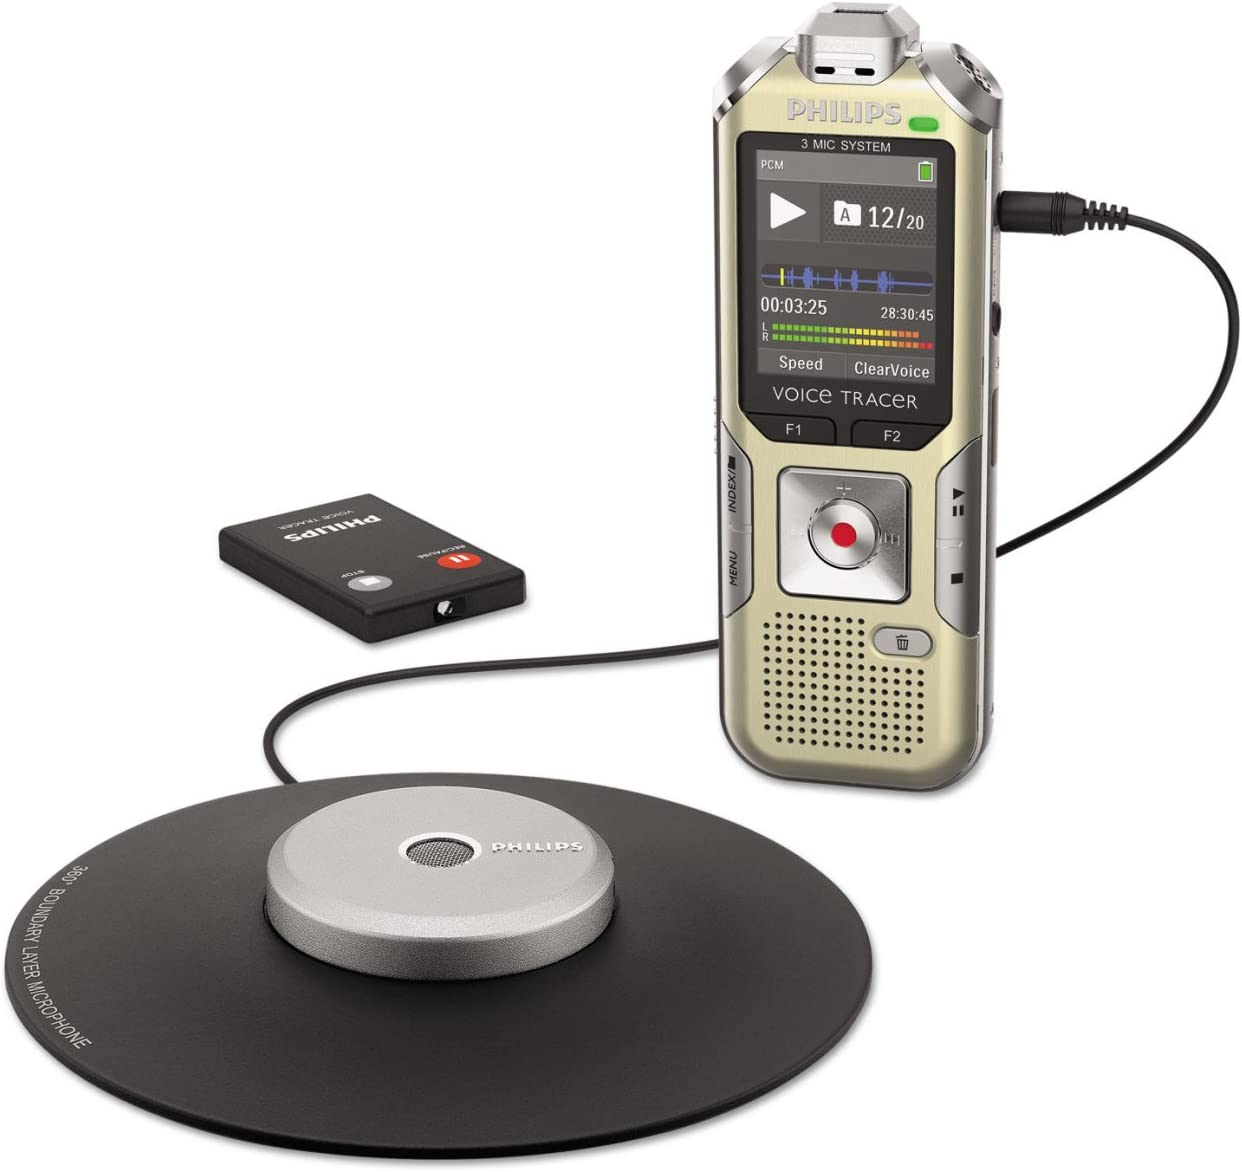 Philips Al sold Max 46% OFF out. DVT8000 Voice Meeting Recorder Tracer